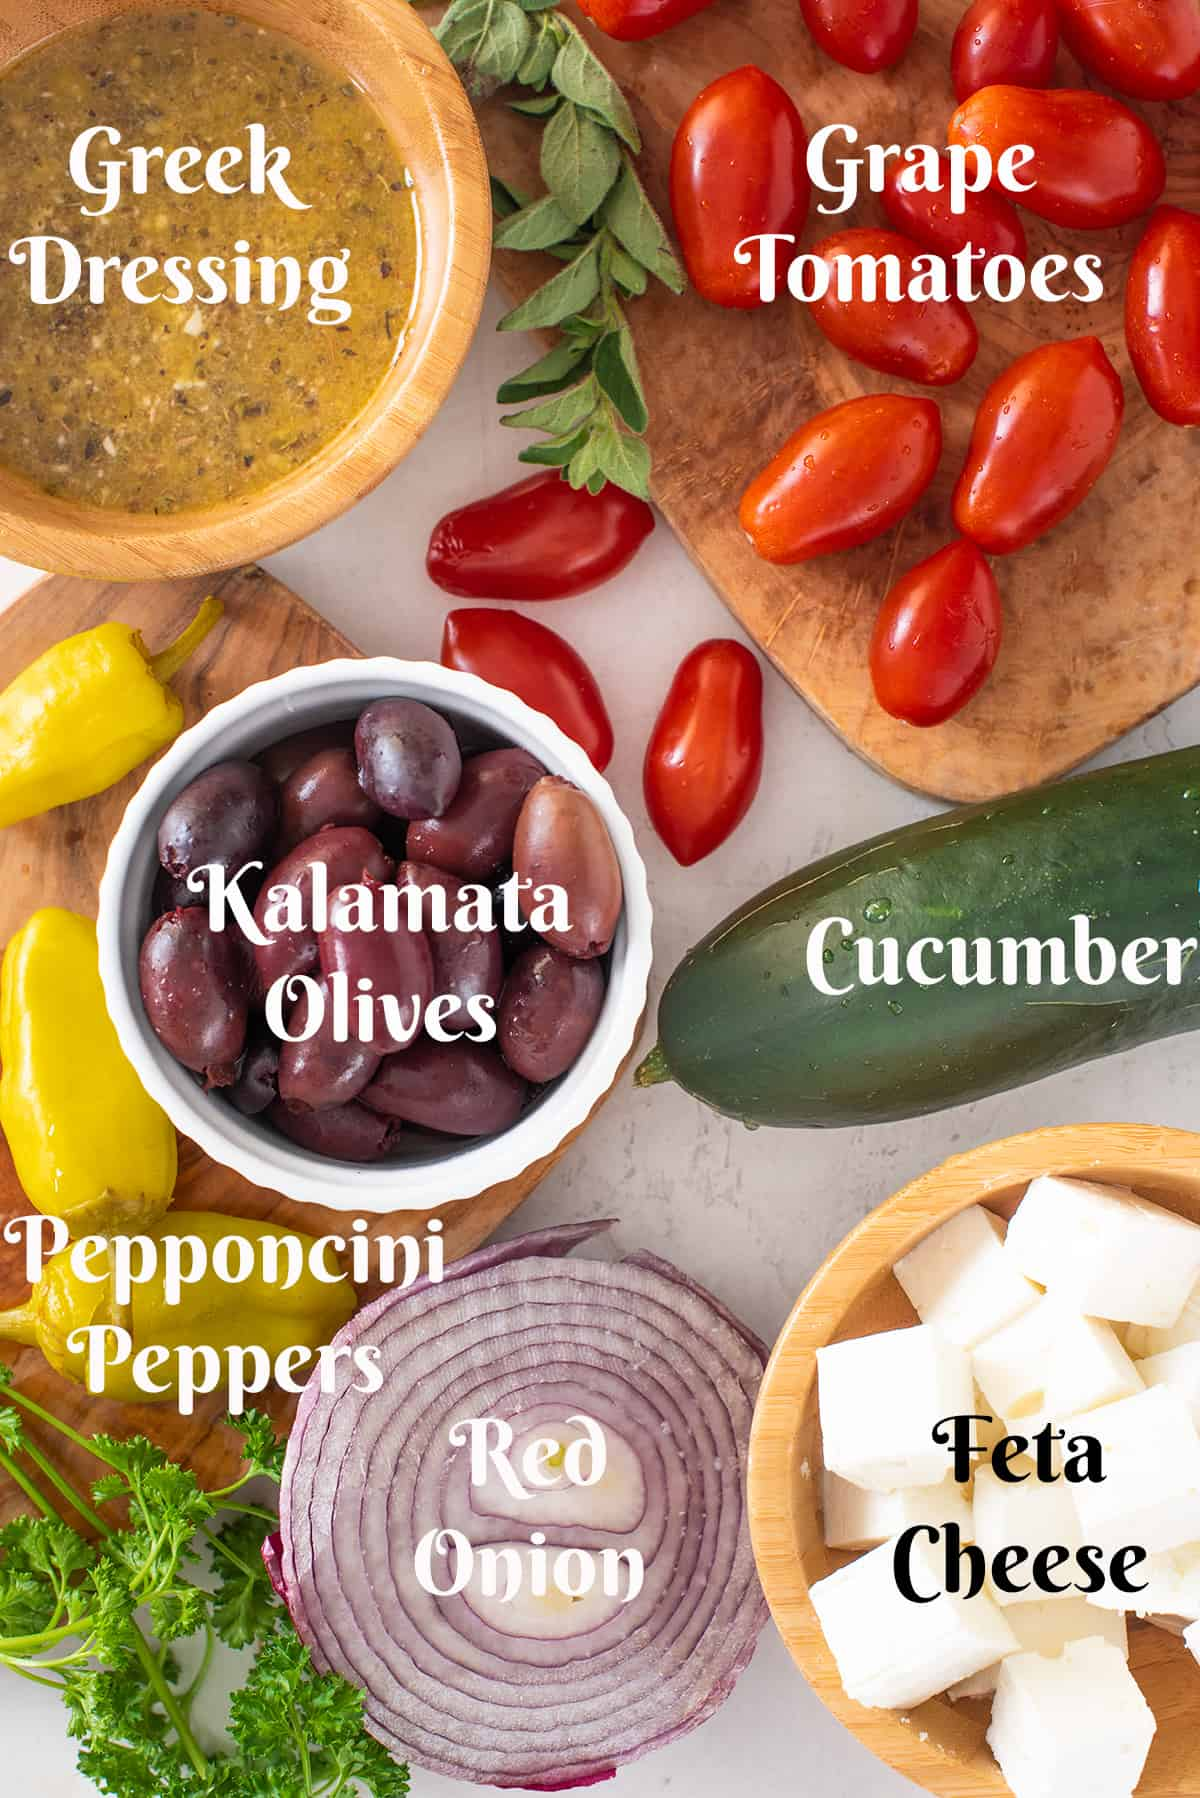 Greek salad ingredients with text labels.